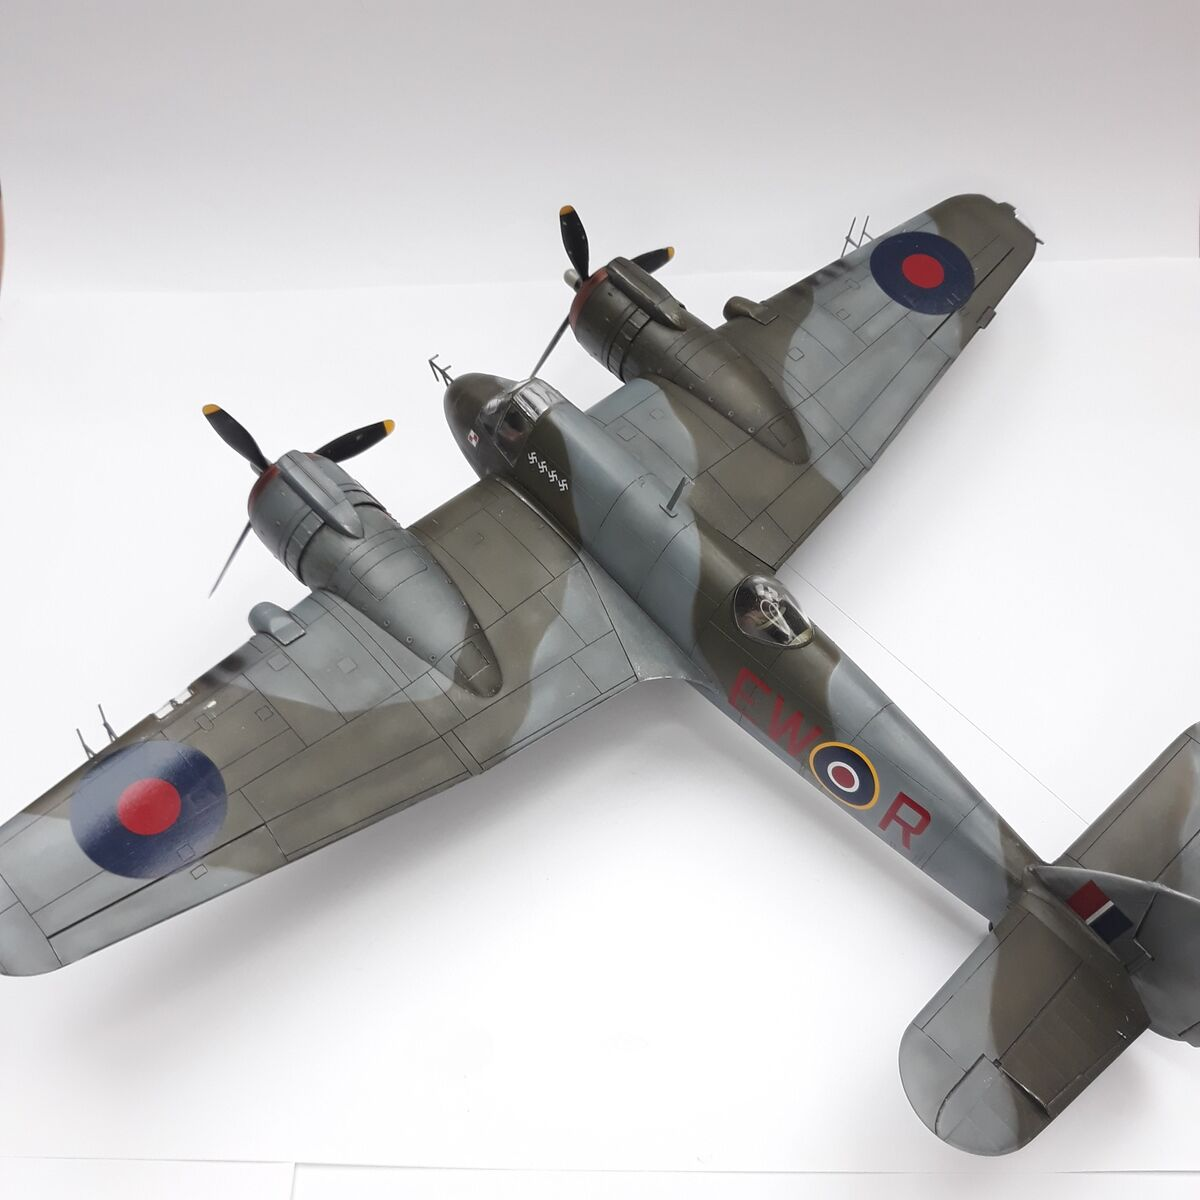 Beaufighter Mk.VI dyw.307 - 004 - Image 1